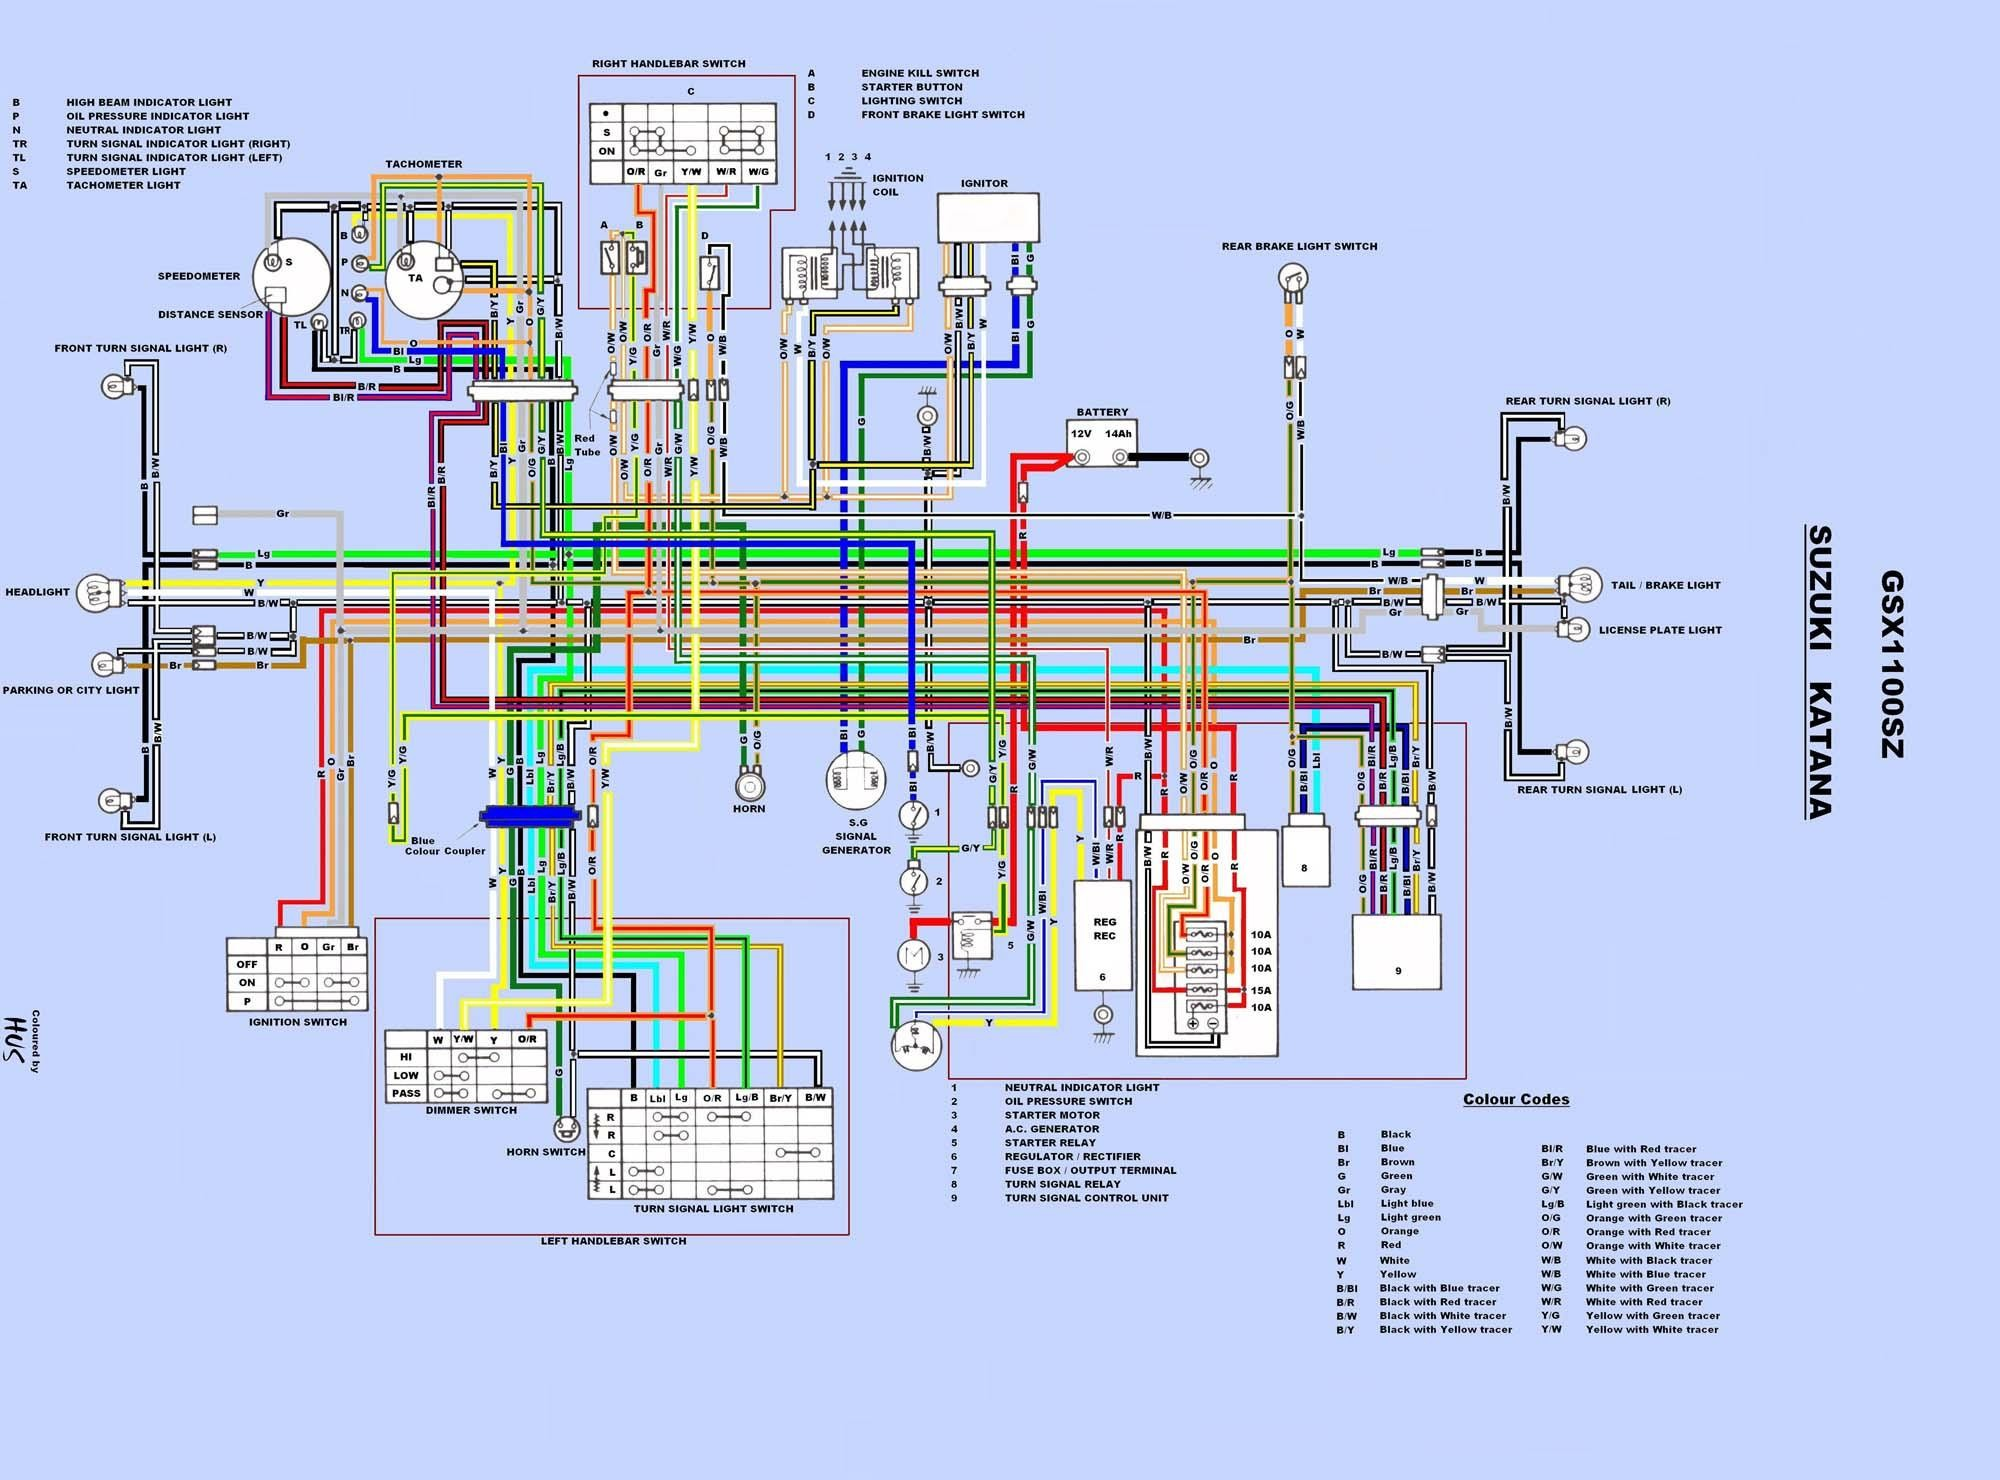 05 Gsxr 600 Wiring Diagram - Wiring Diagrams DataUssel